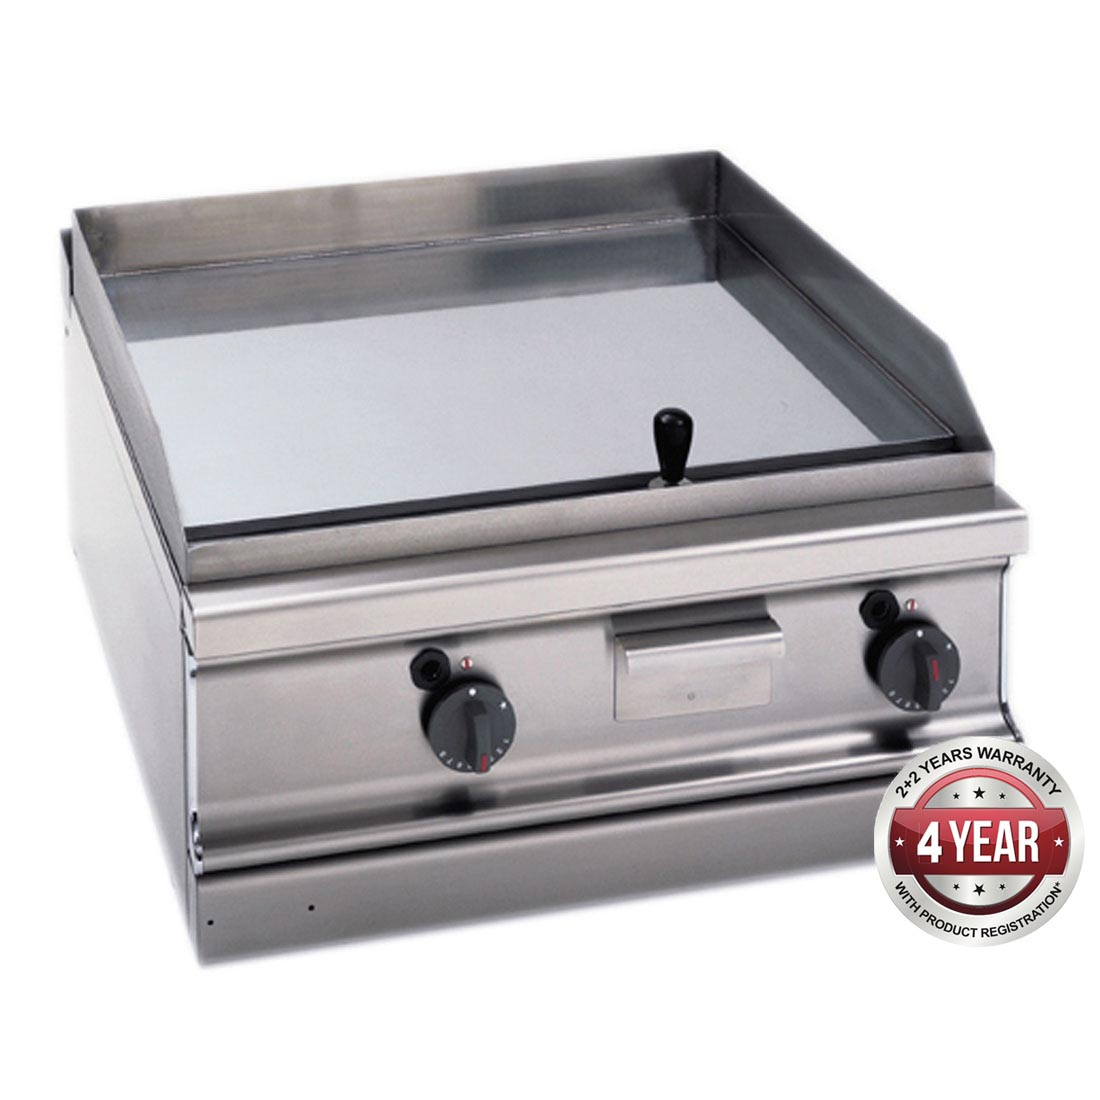 Fagor 700 series natural gas chrome 2 zone fry top with thermostatic control FTG-C7-10L